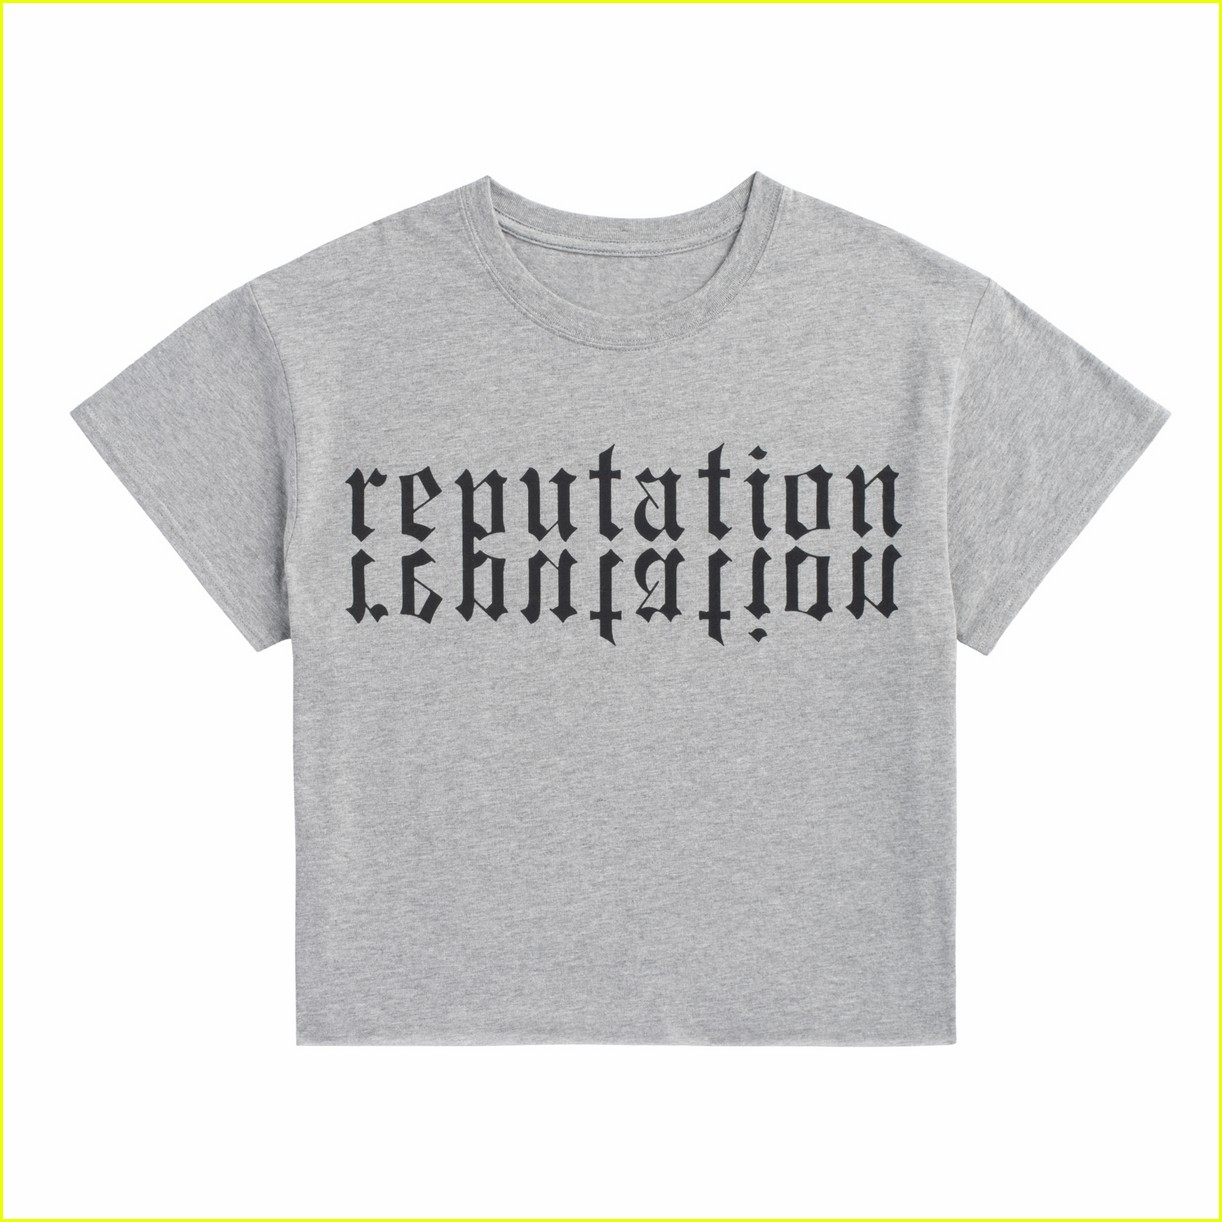 Get Your Taylor Swift ... Taylor Swift Reputation Merch